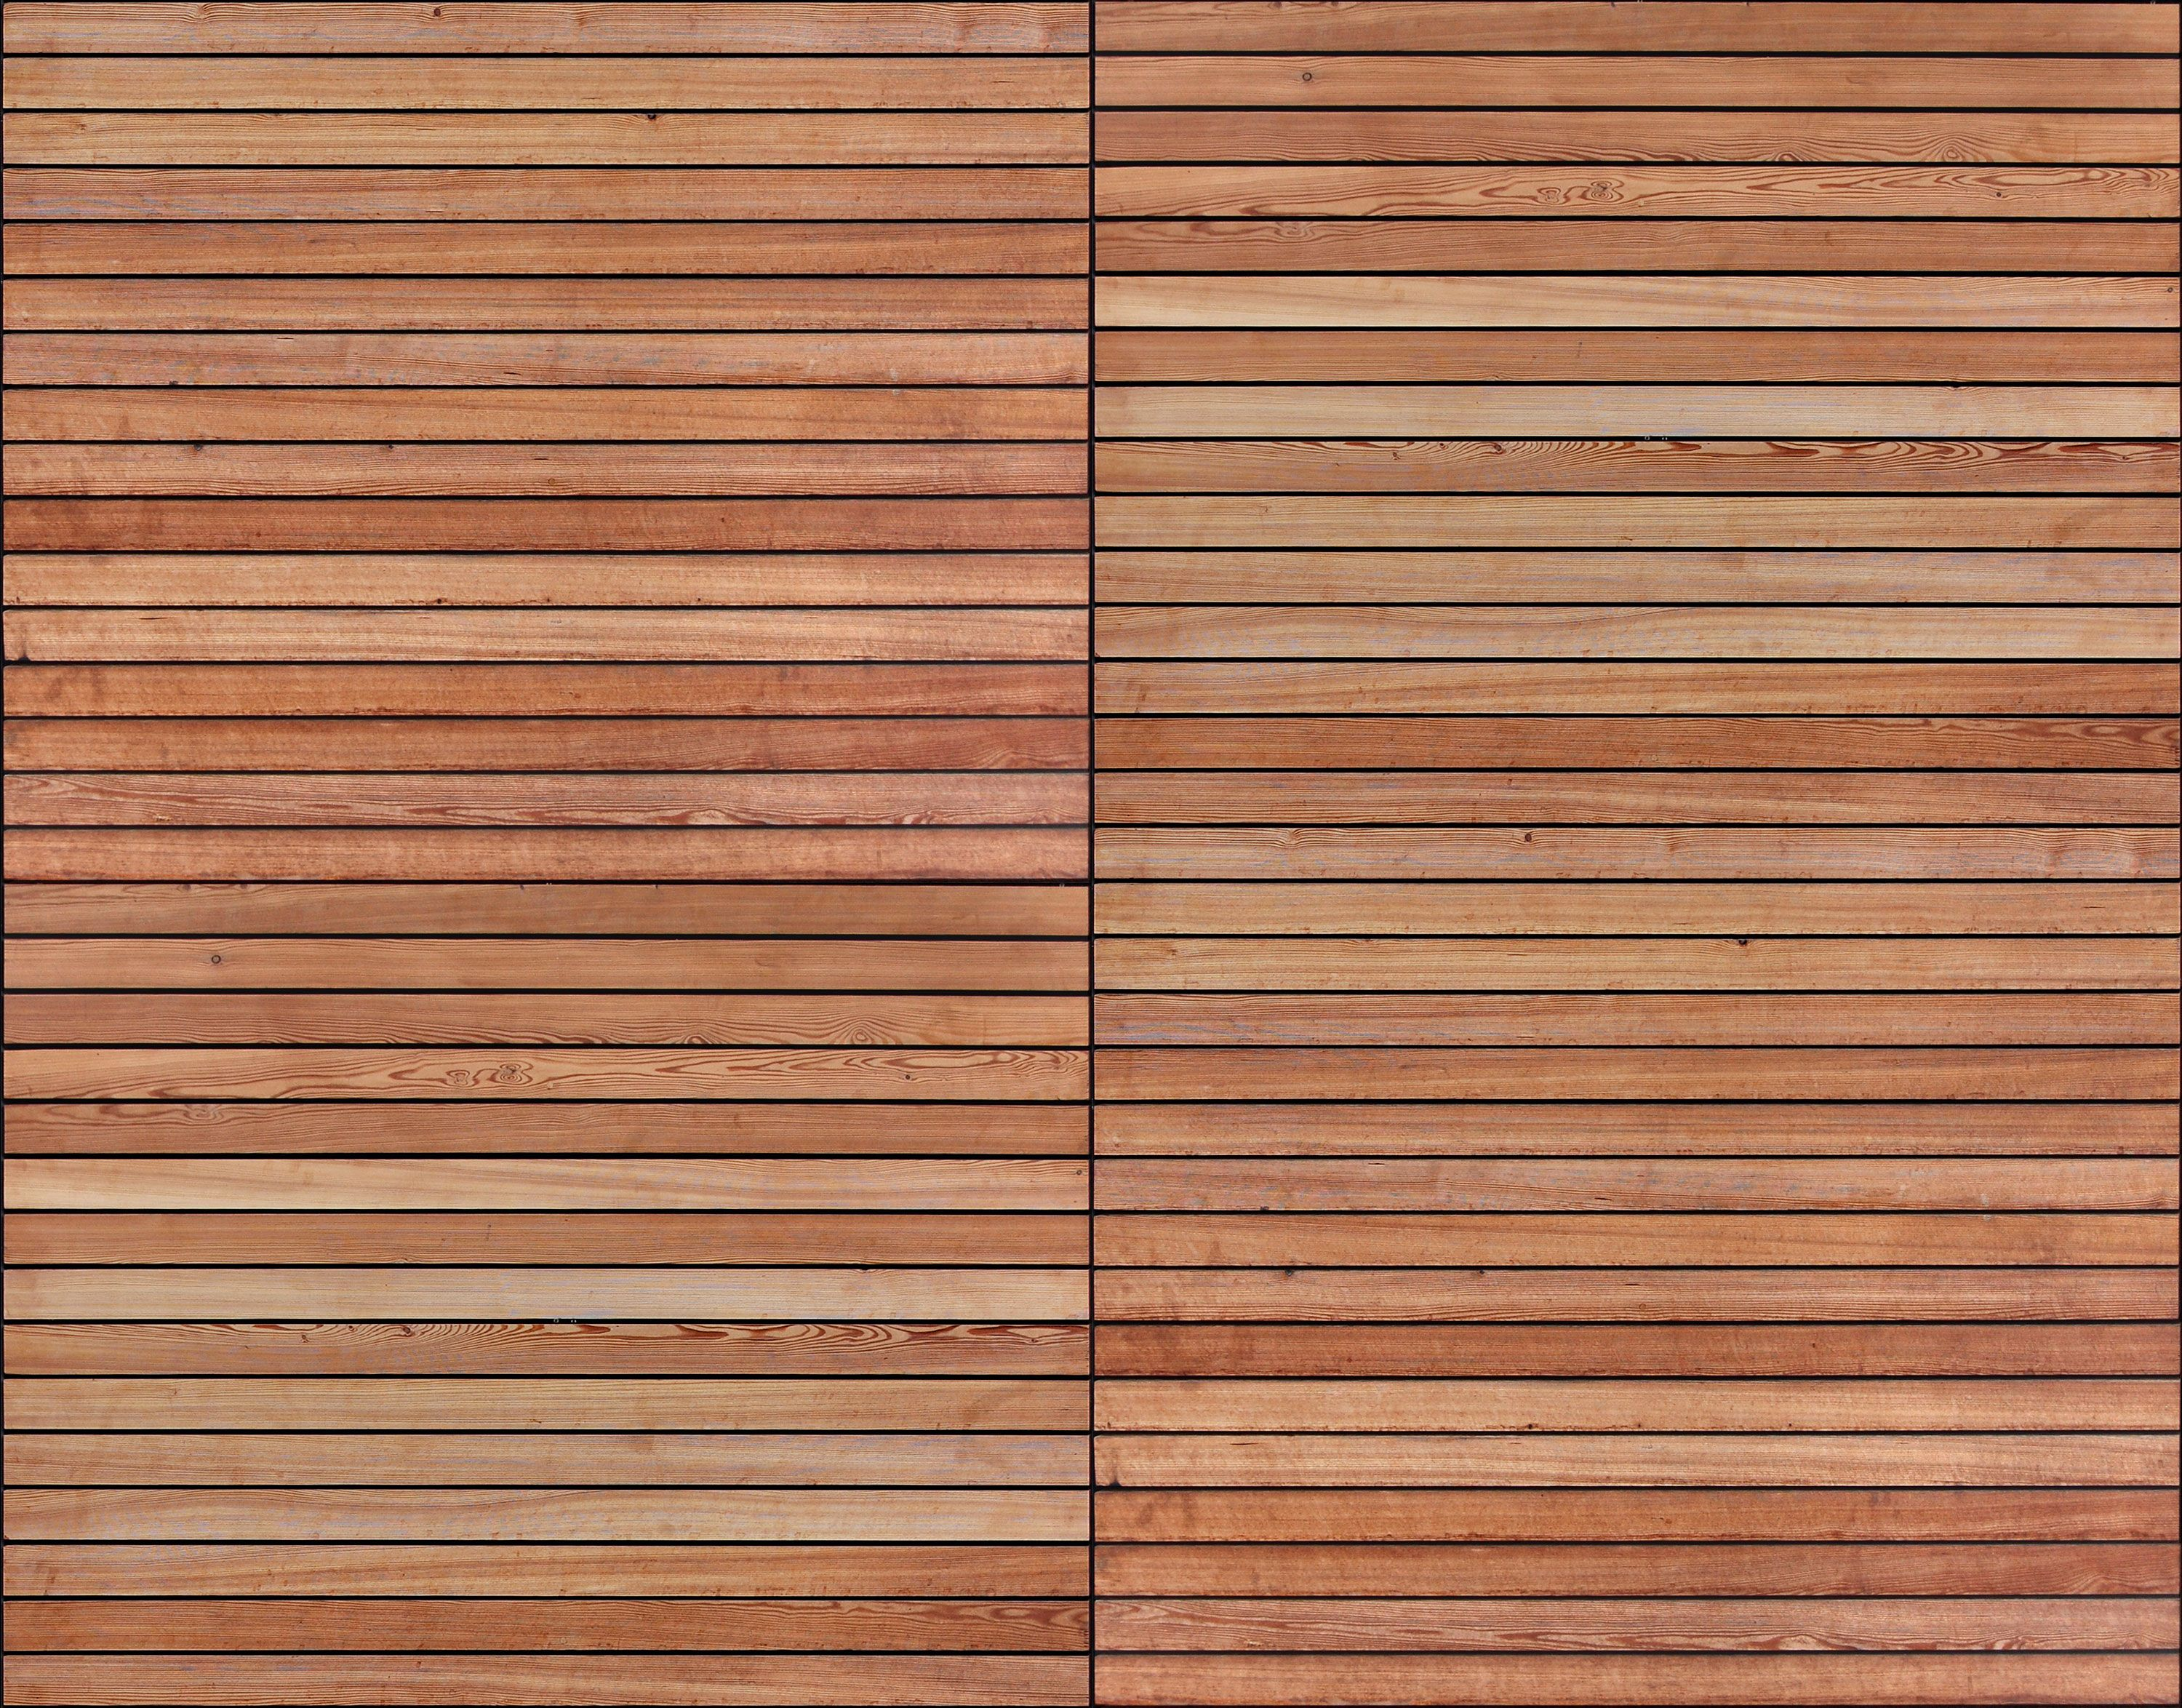 Horizontal timber boards seamless texture woods